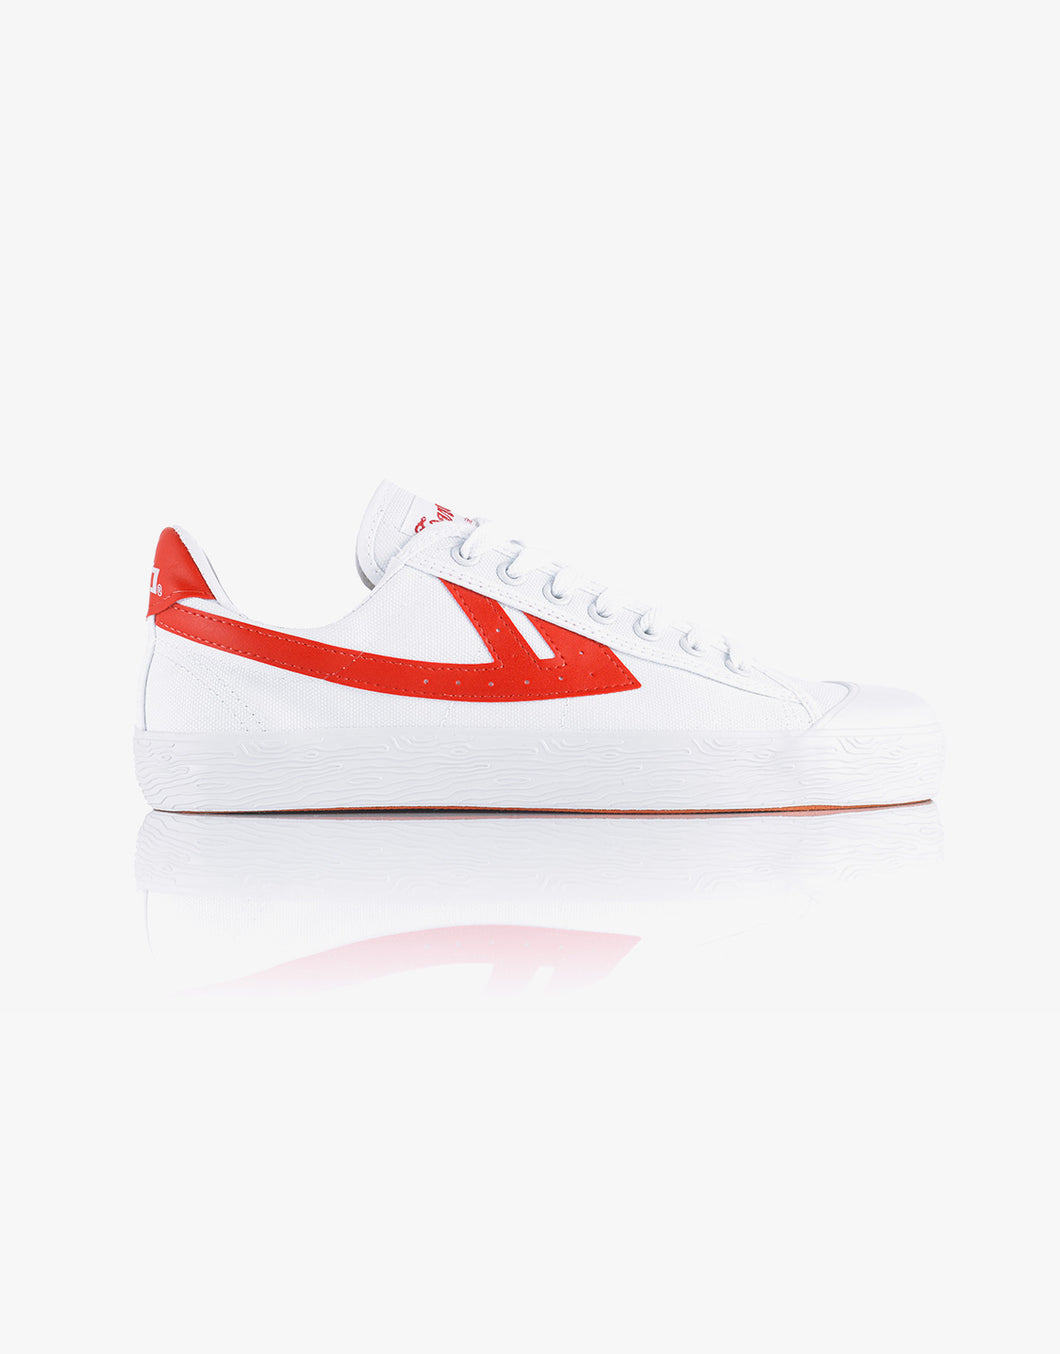 Warrior WB-1 white red